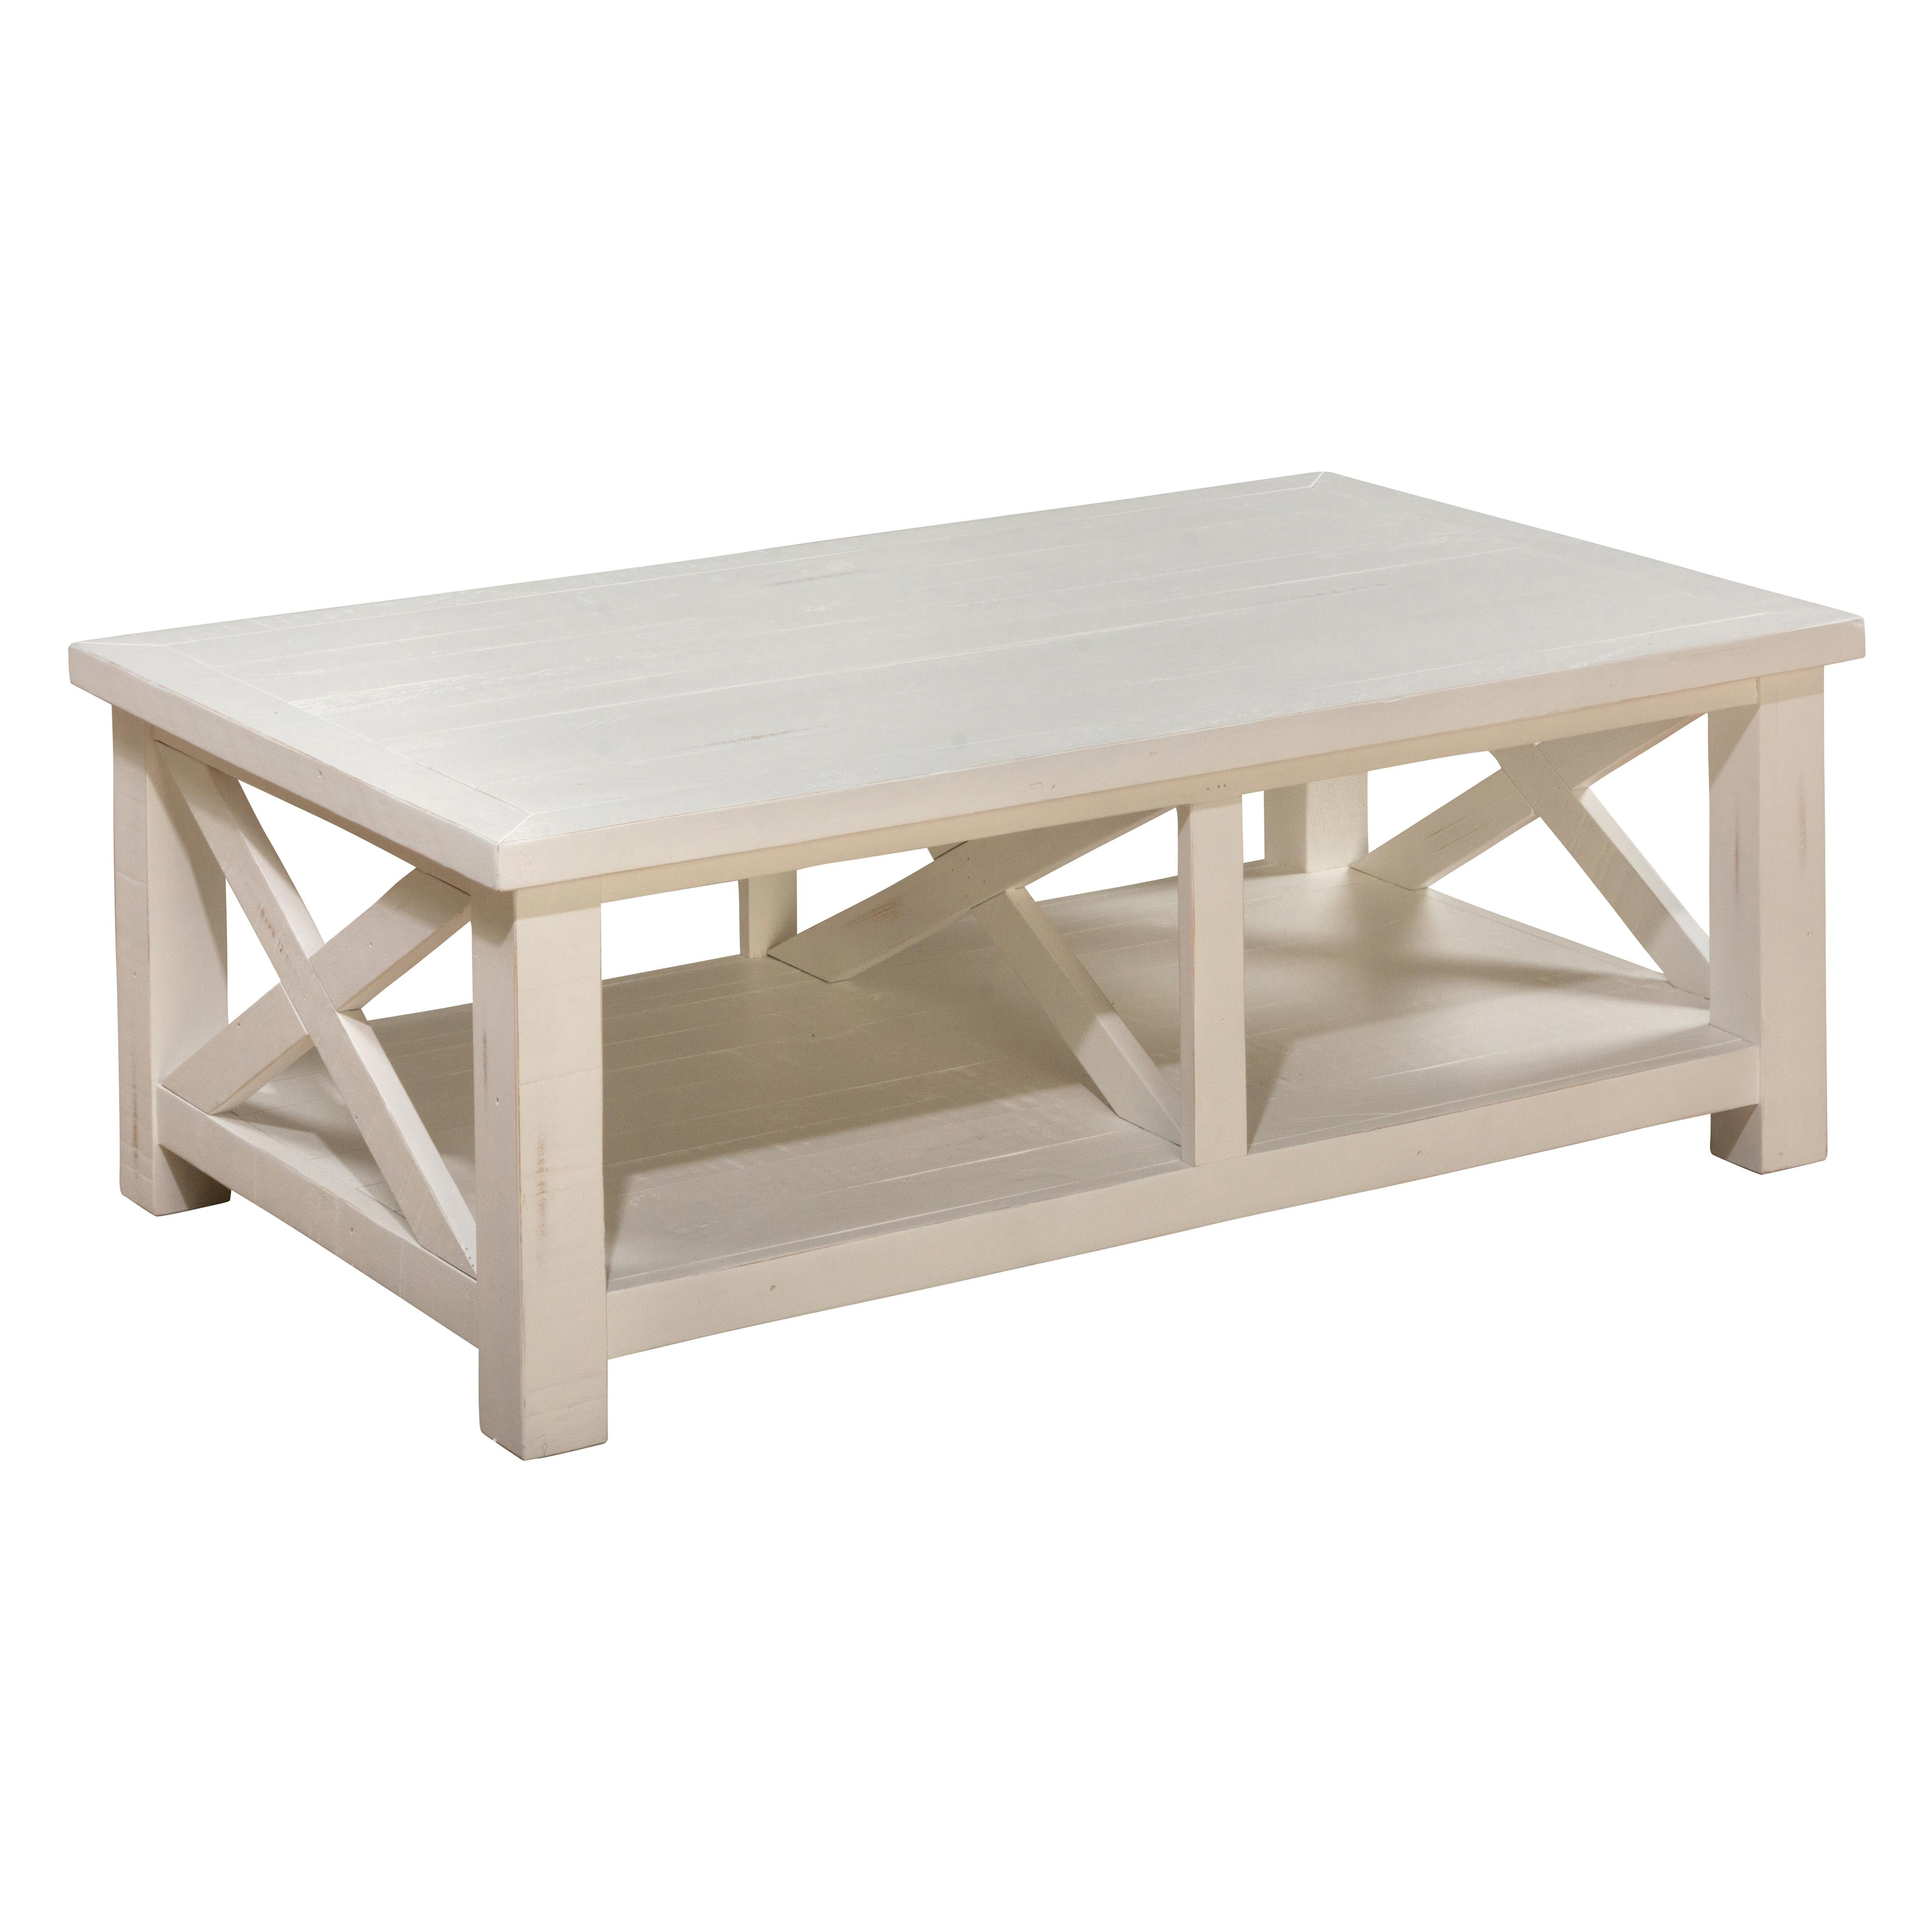 Jofran madaket 649 1 reclaimed pine cocktail table for Pine coffee table with storage